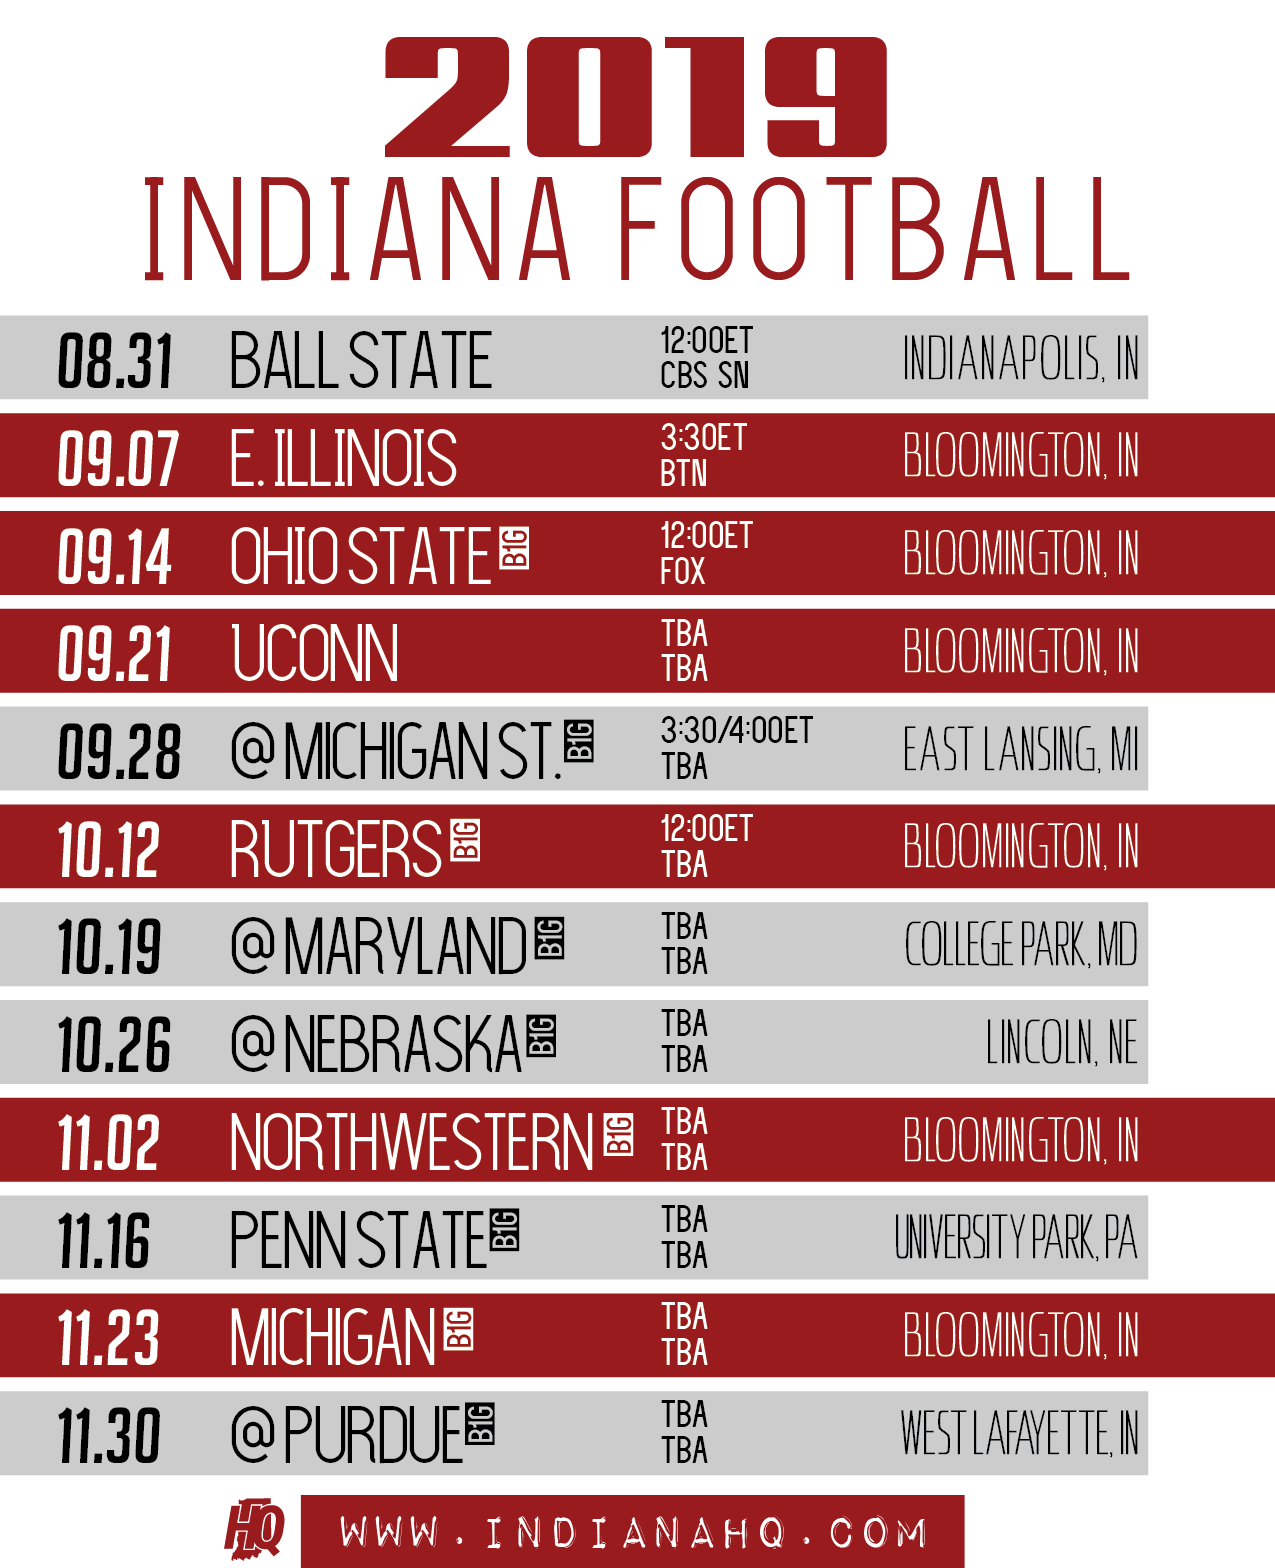 Ohio State Football Schedule 2019 2019 Indiana Football Schedule (Printable)   IndianaHQ